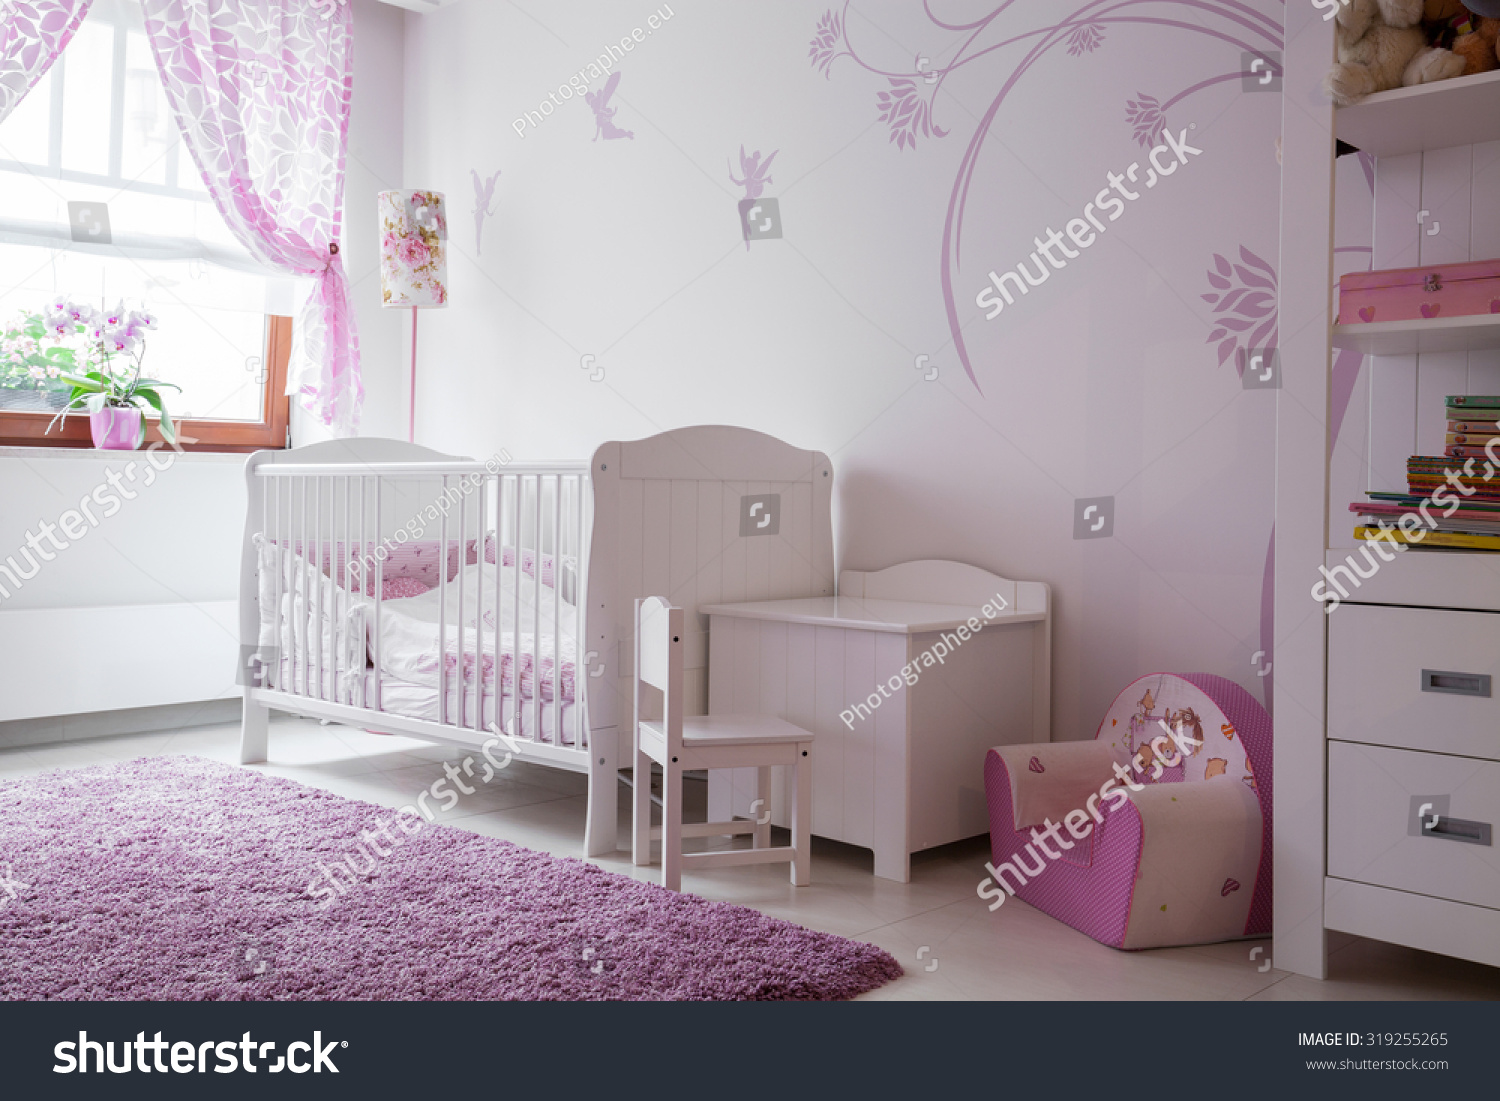 Interior baby room white furniture pink stock photo Pink room with white furniture